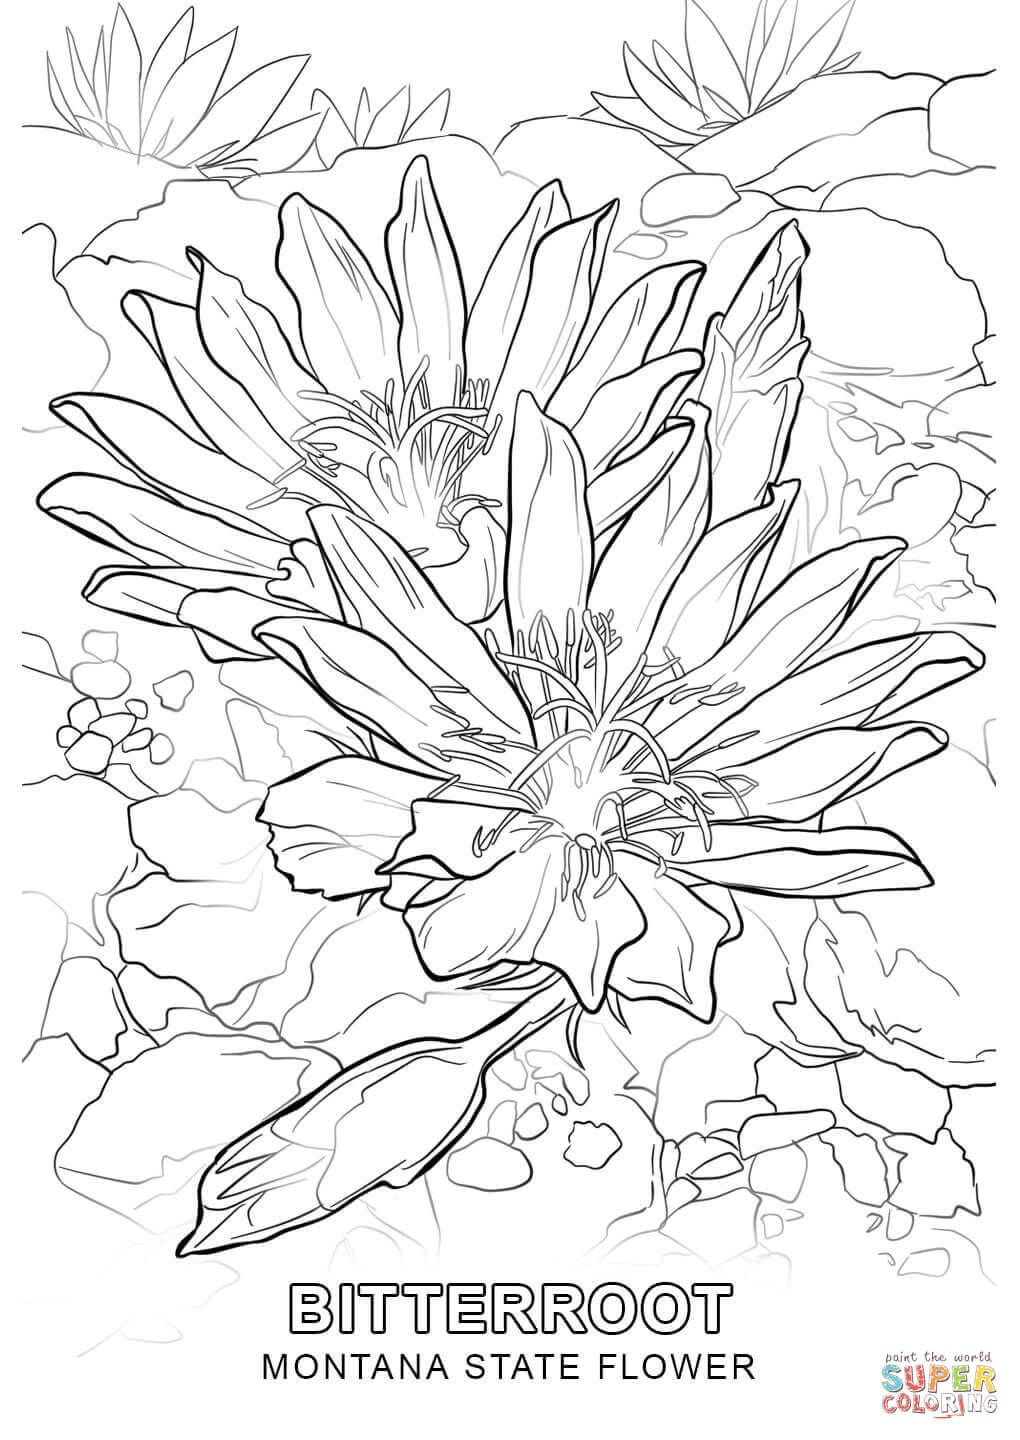 Montana State Flower Coloring Page Free Printable Coloring Pages